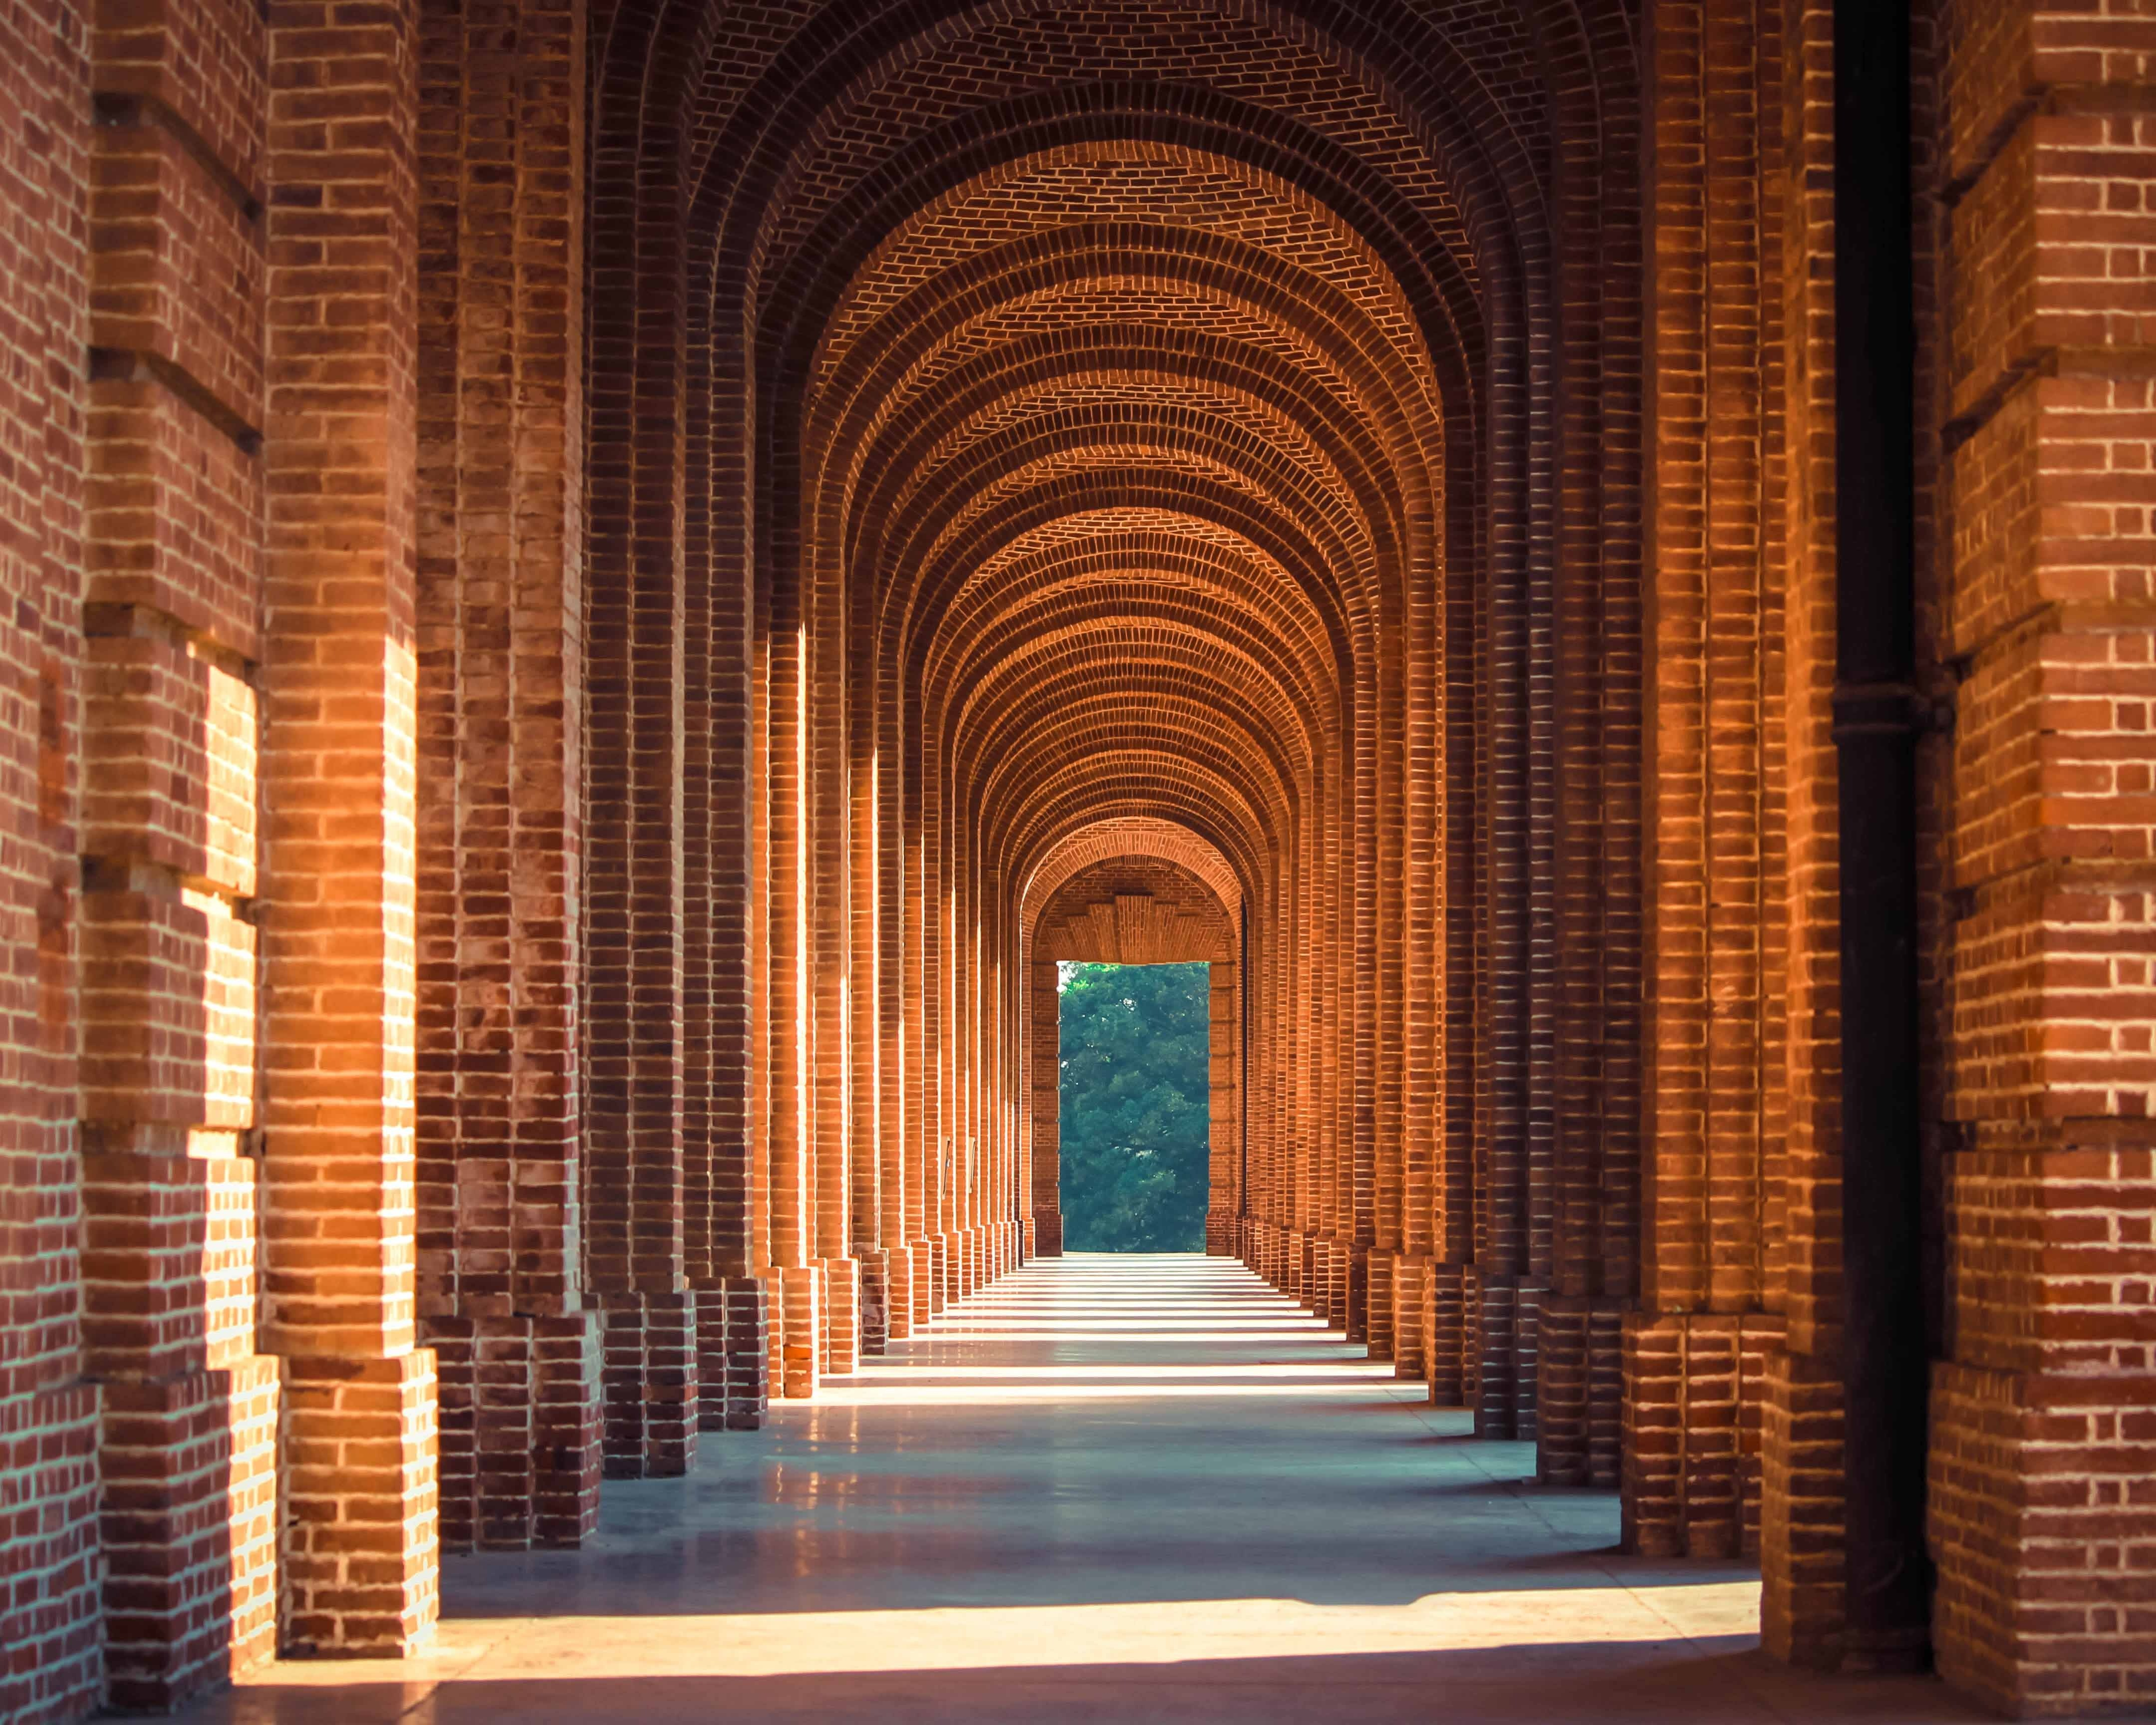 College hallway with arches